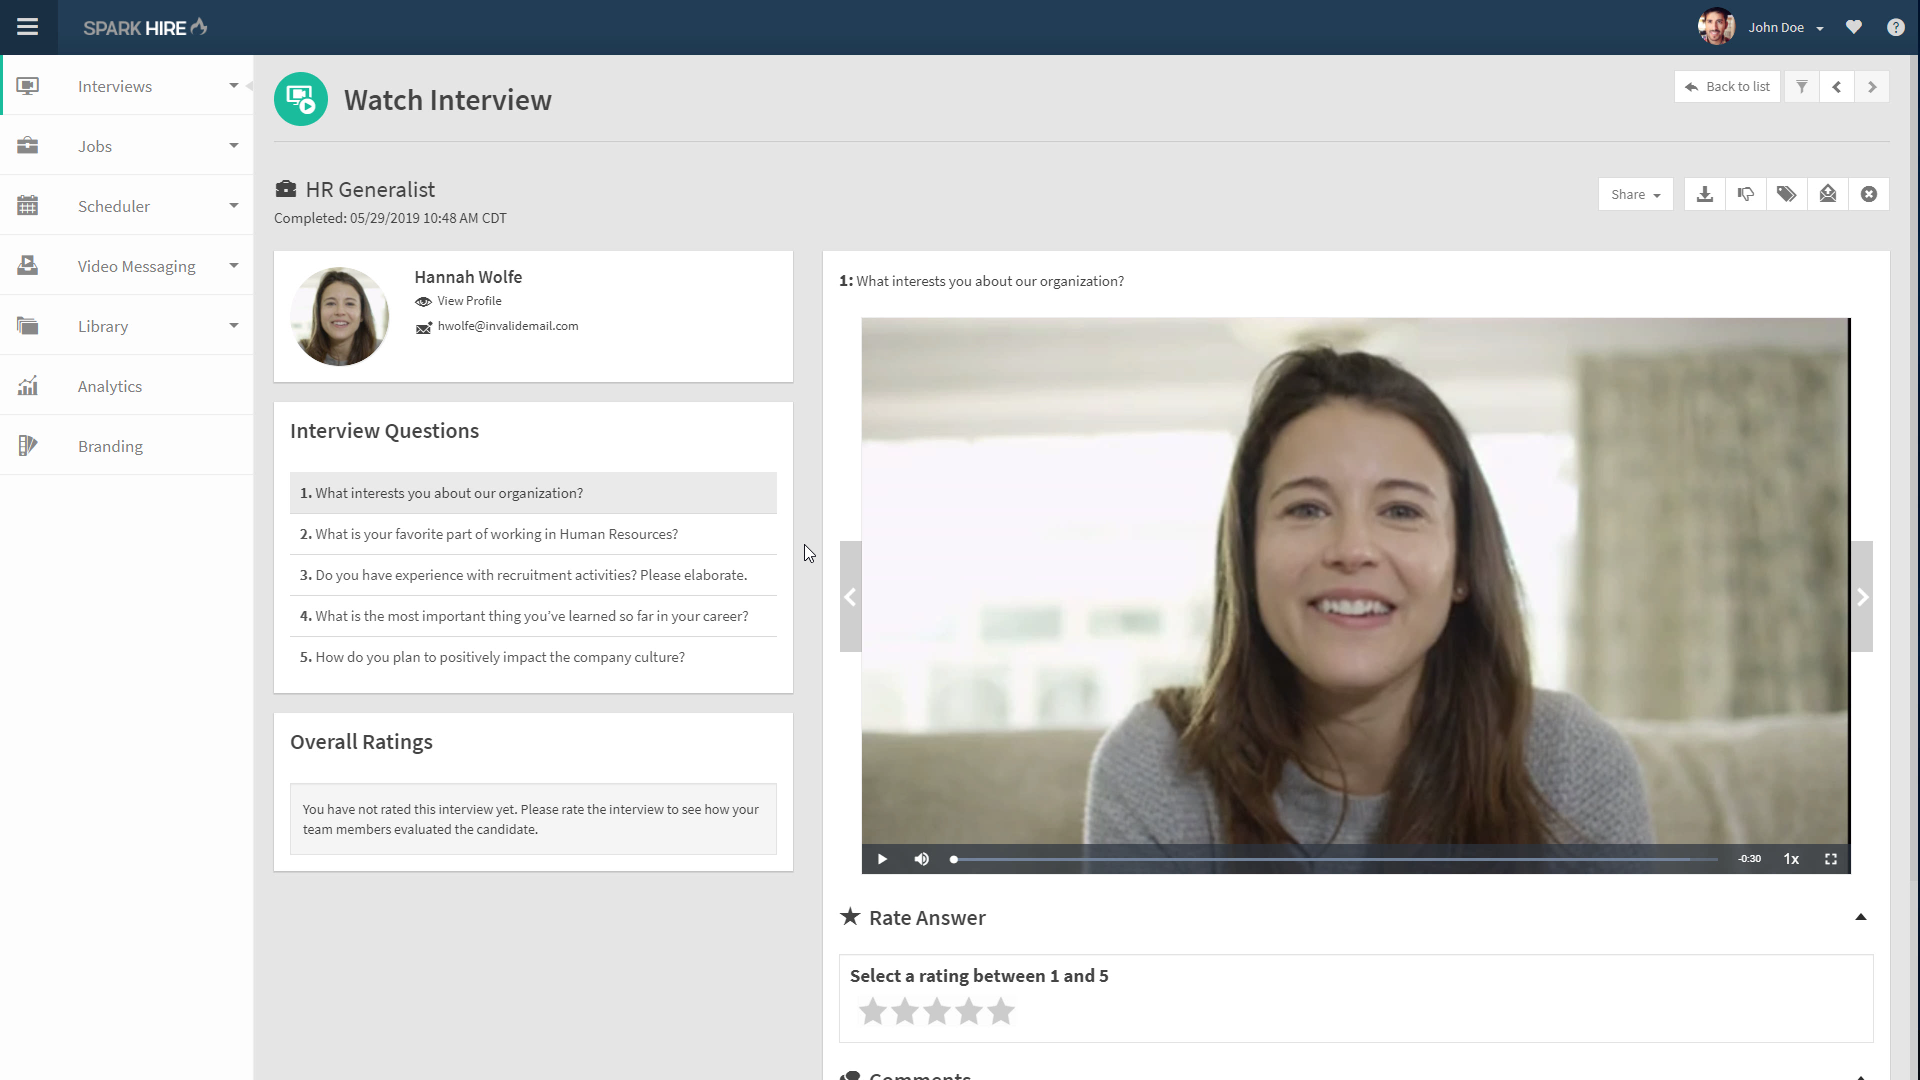 Taleo_Video_Tutorial_watch_interview_on_spark_hire.png